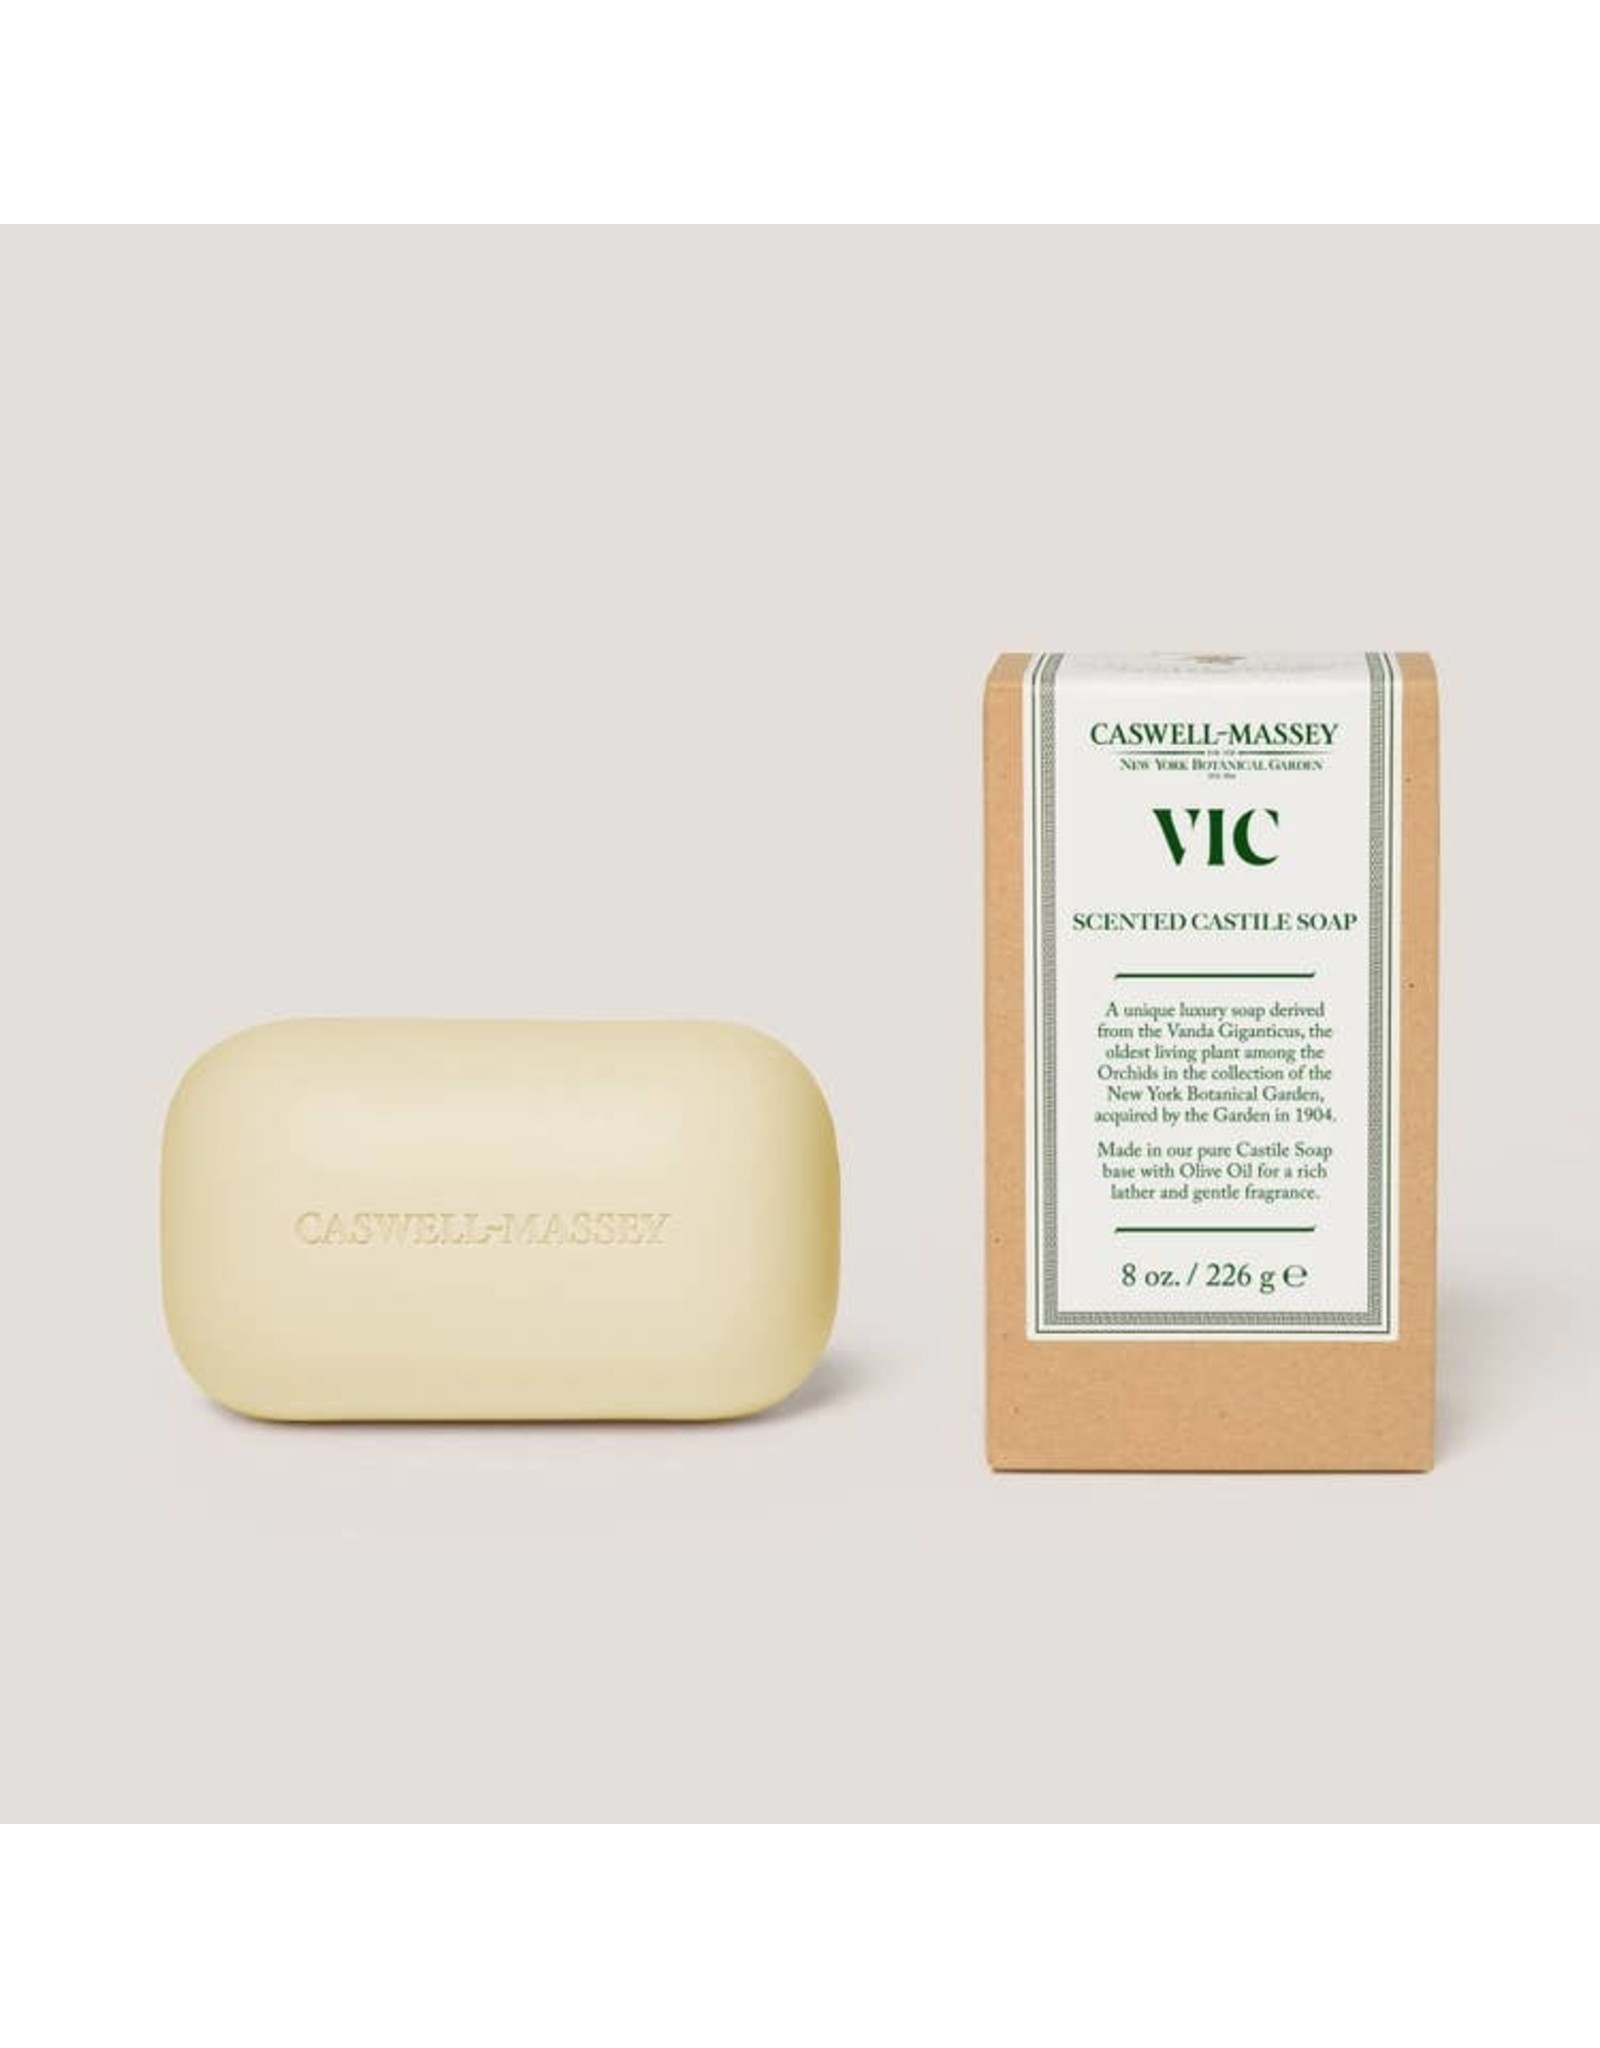 Caswell-Massey Apothecary VIC Saddle Bar Castile Soap